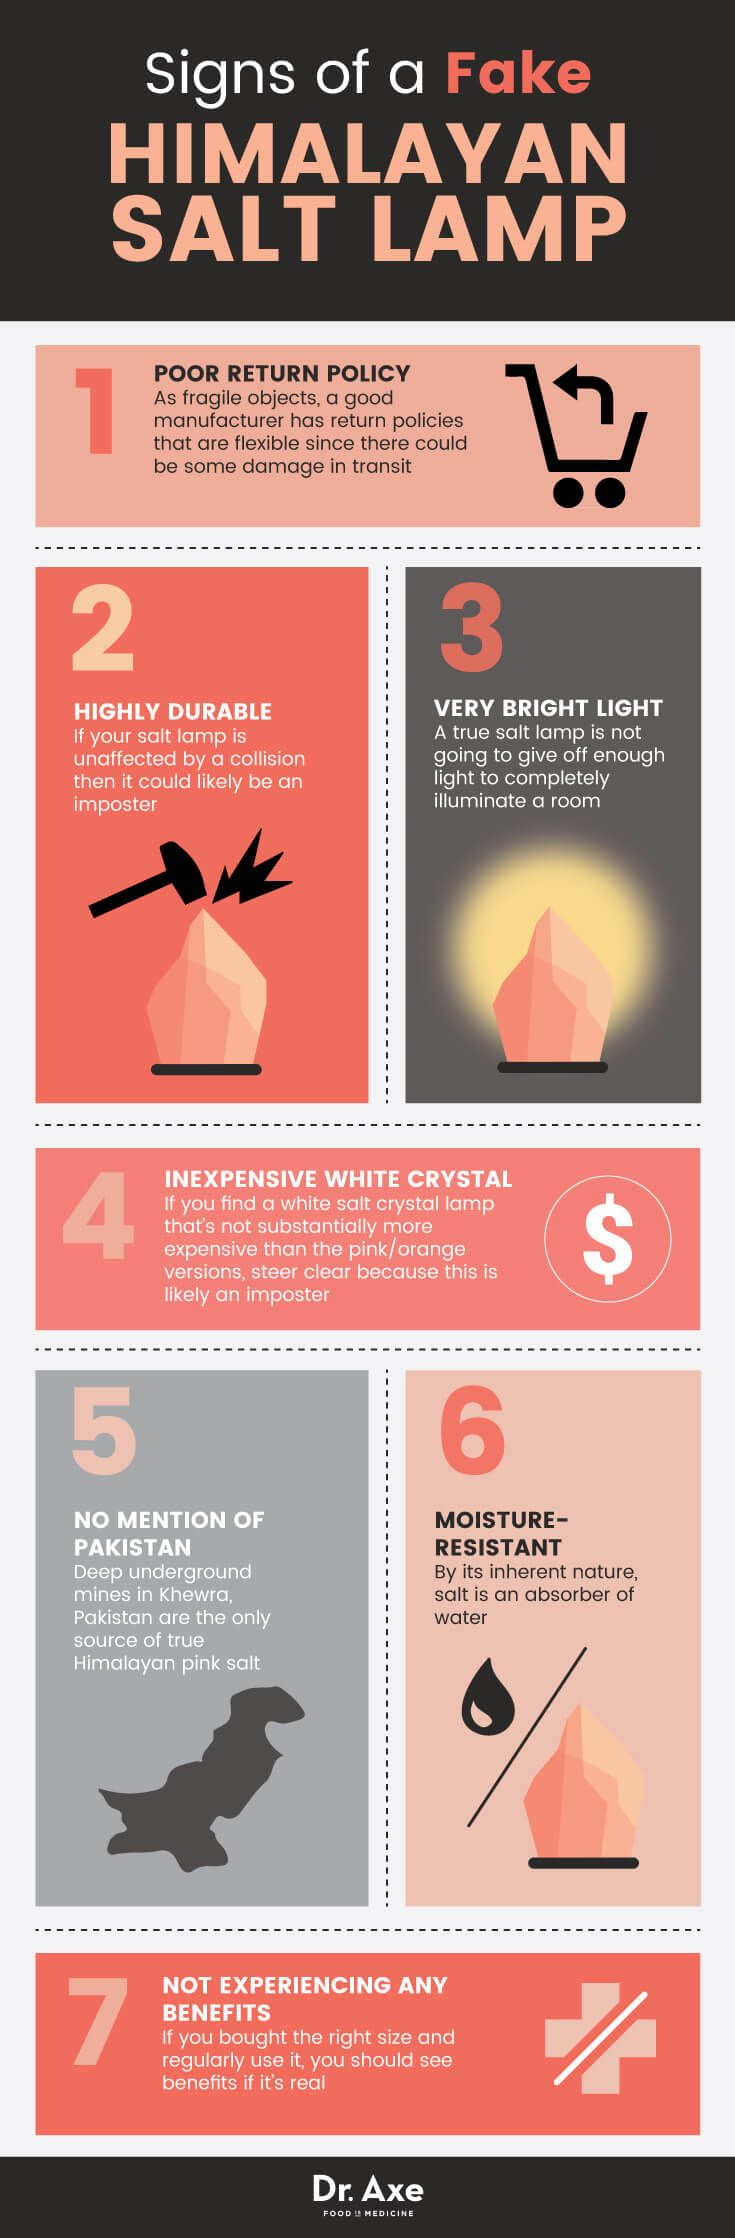 Fake Himalayan salt lamp signs - Dr. axe http://www.draxe.com #health #holistic #natural